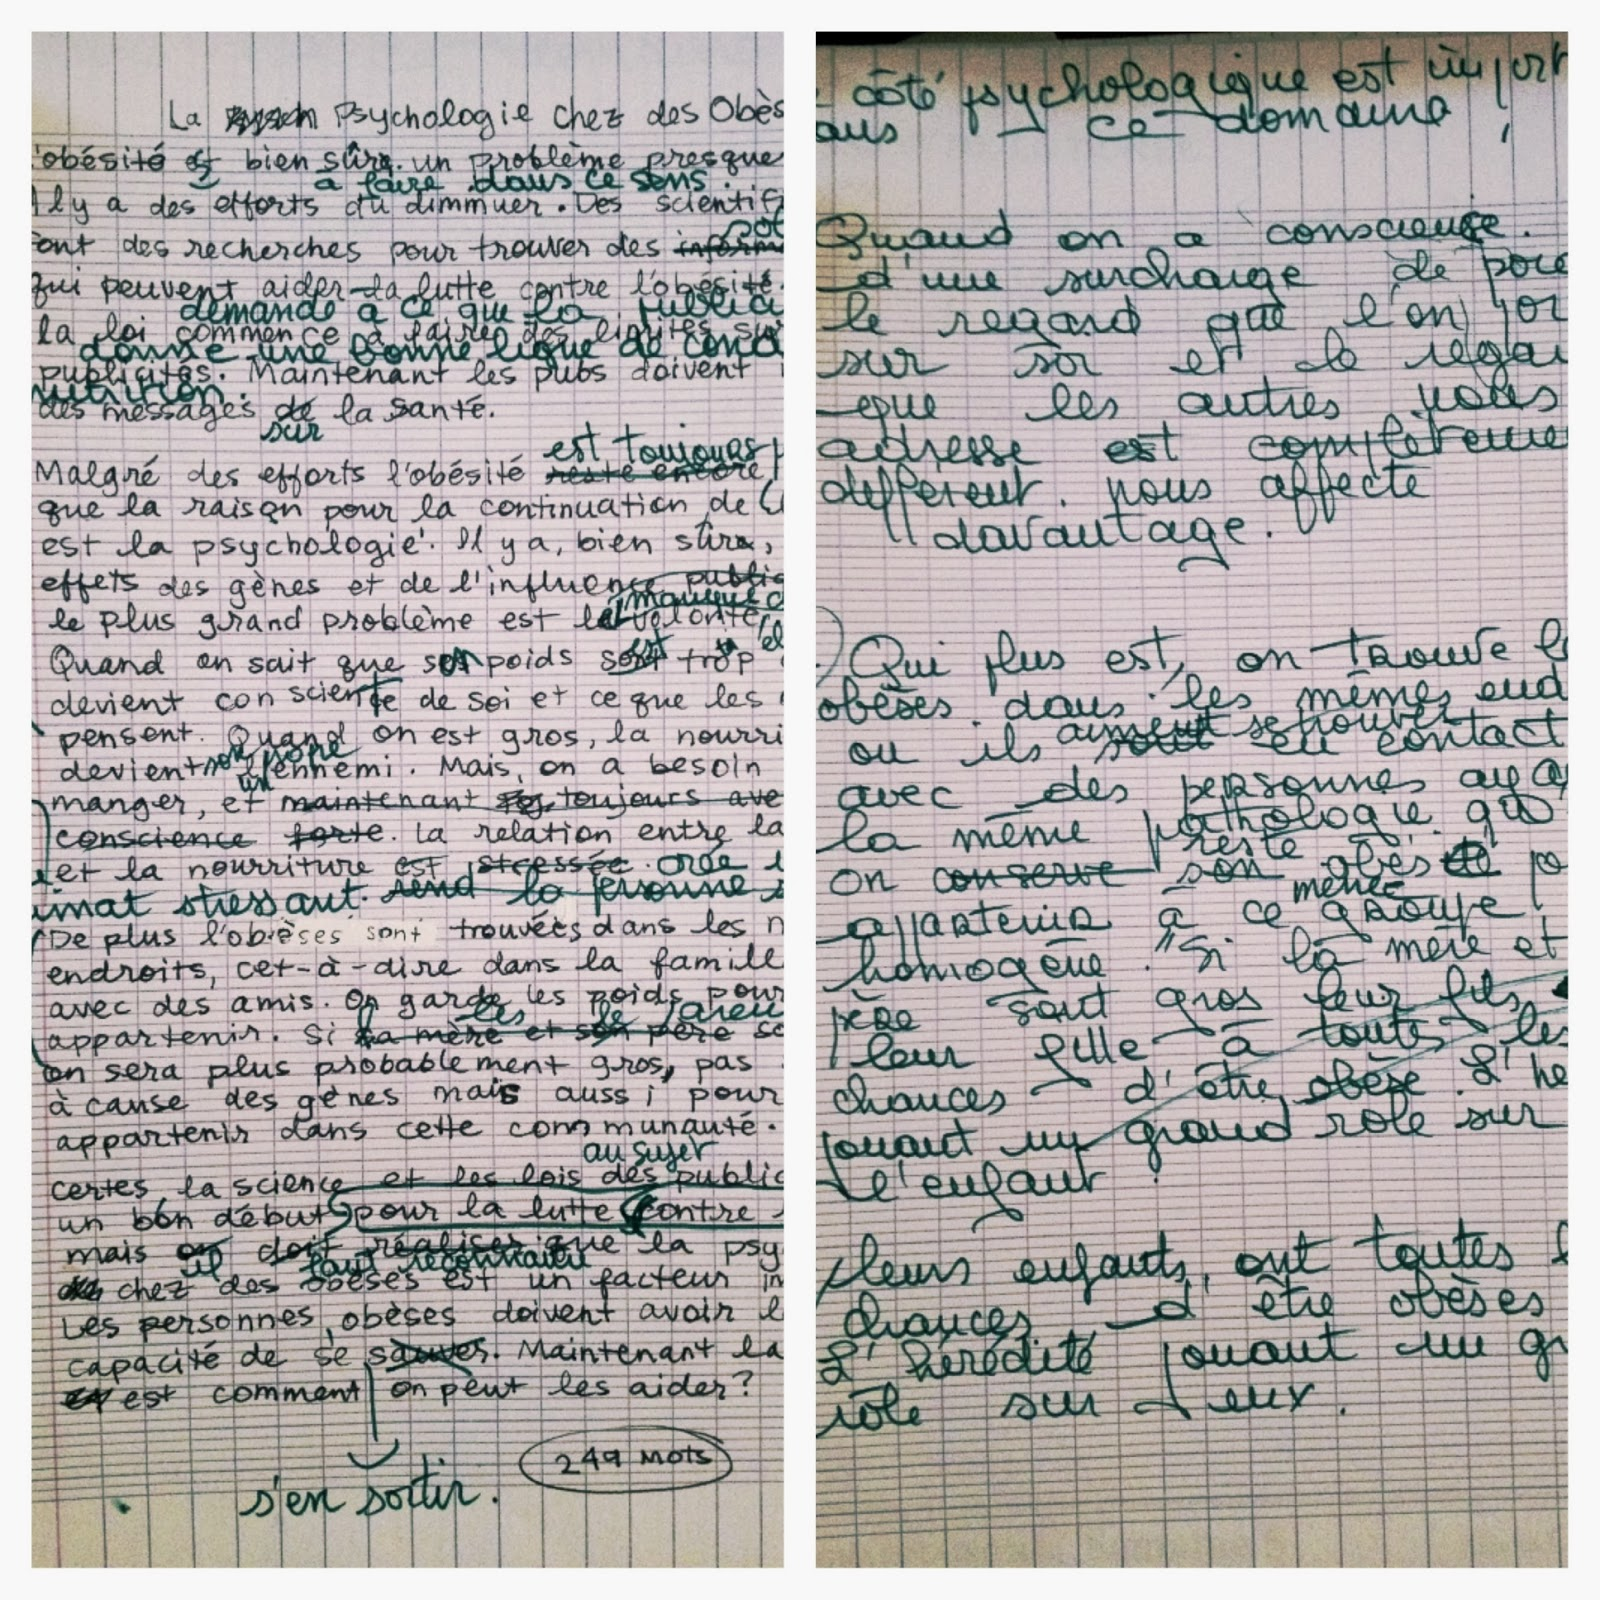 bells and whistles on the left is my original essay gone over her corrections on the right is a continuation of her corrections pretty sure she ended up writing more